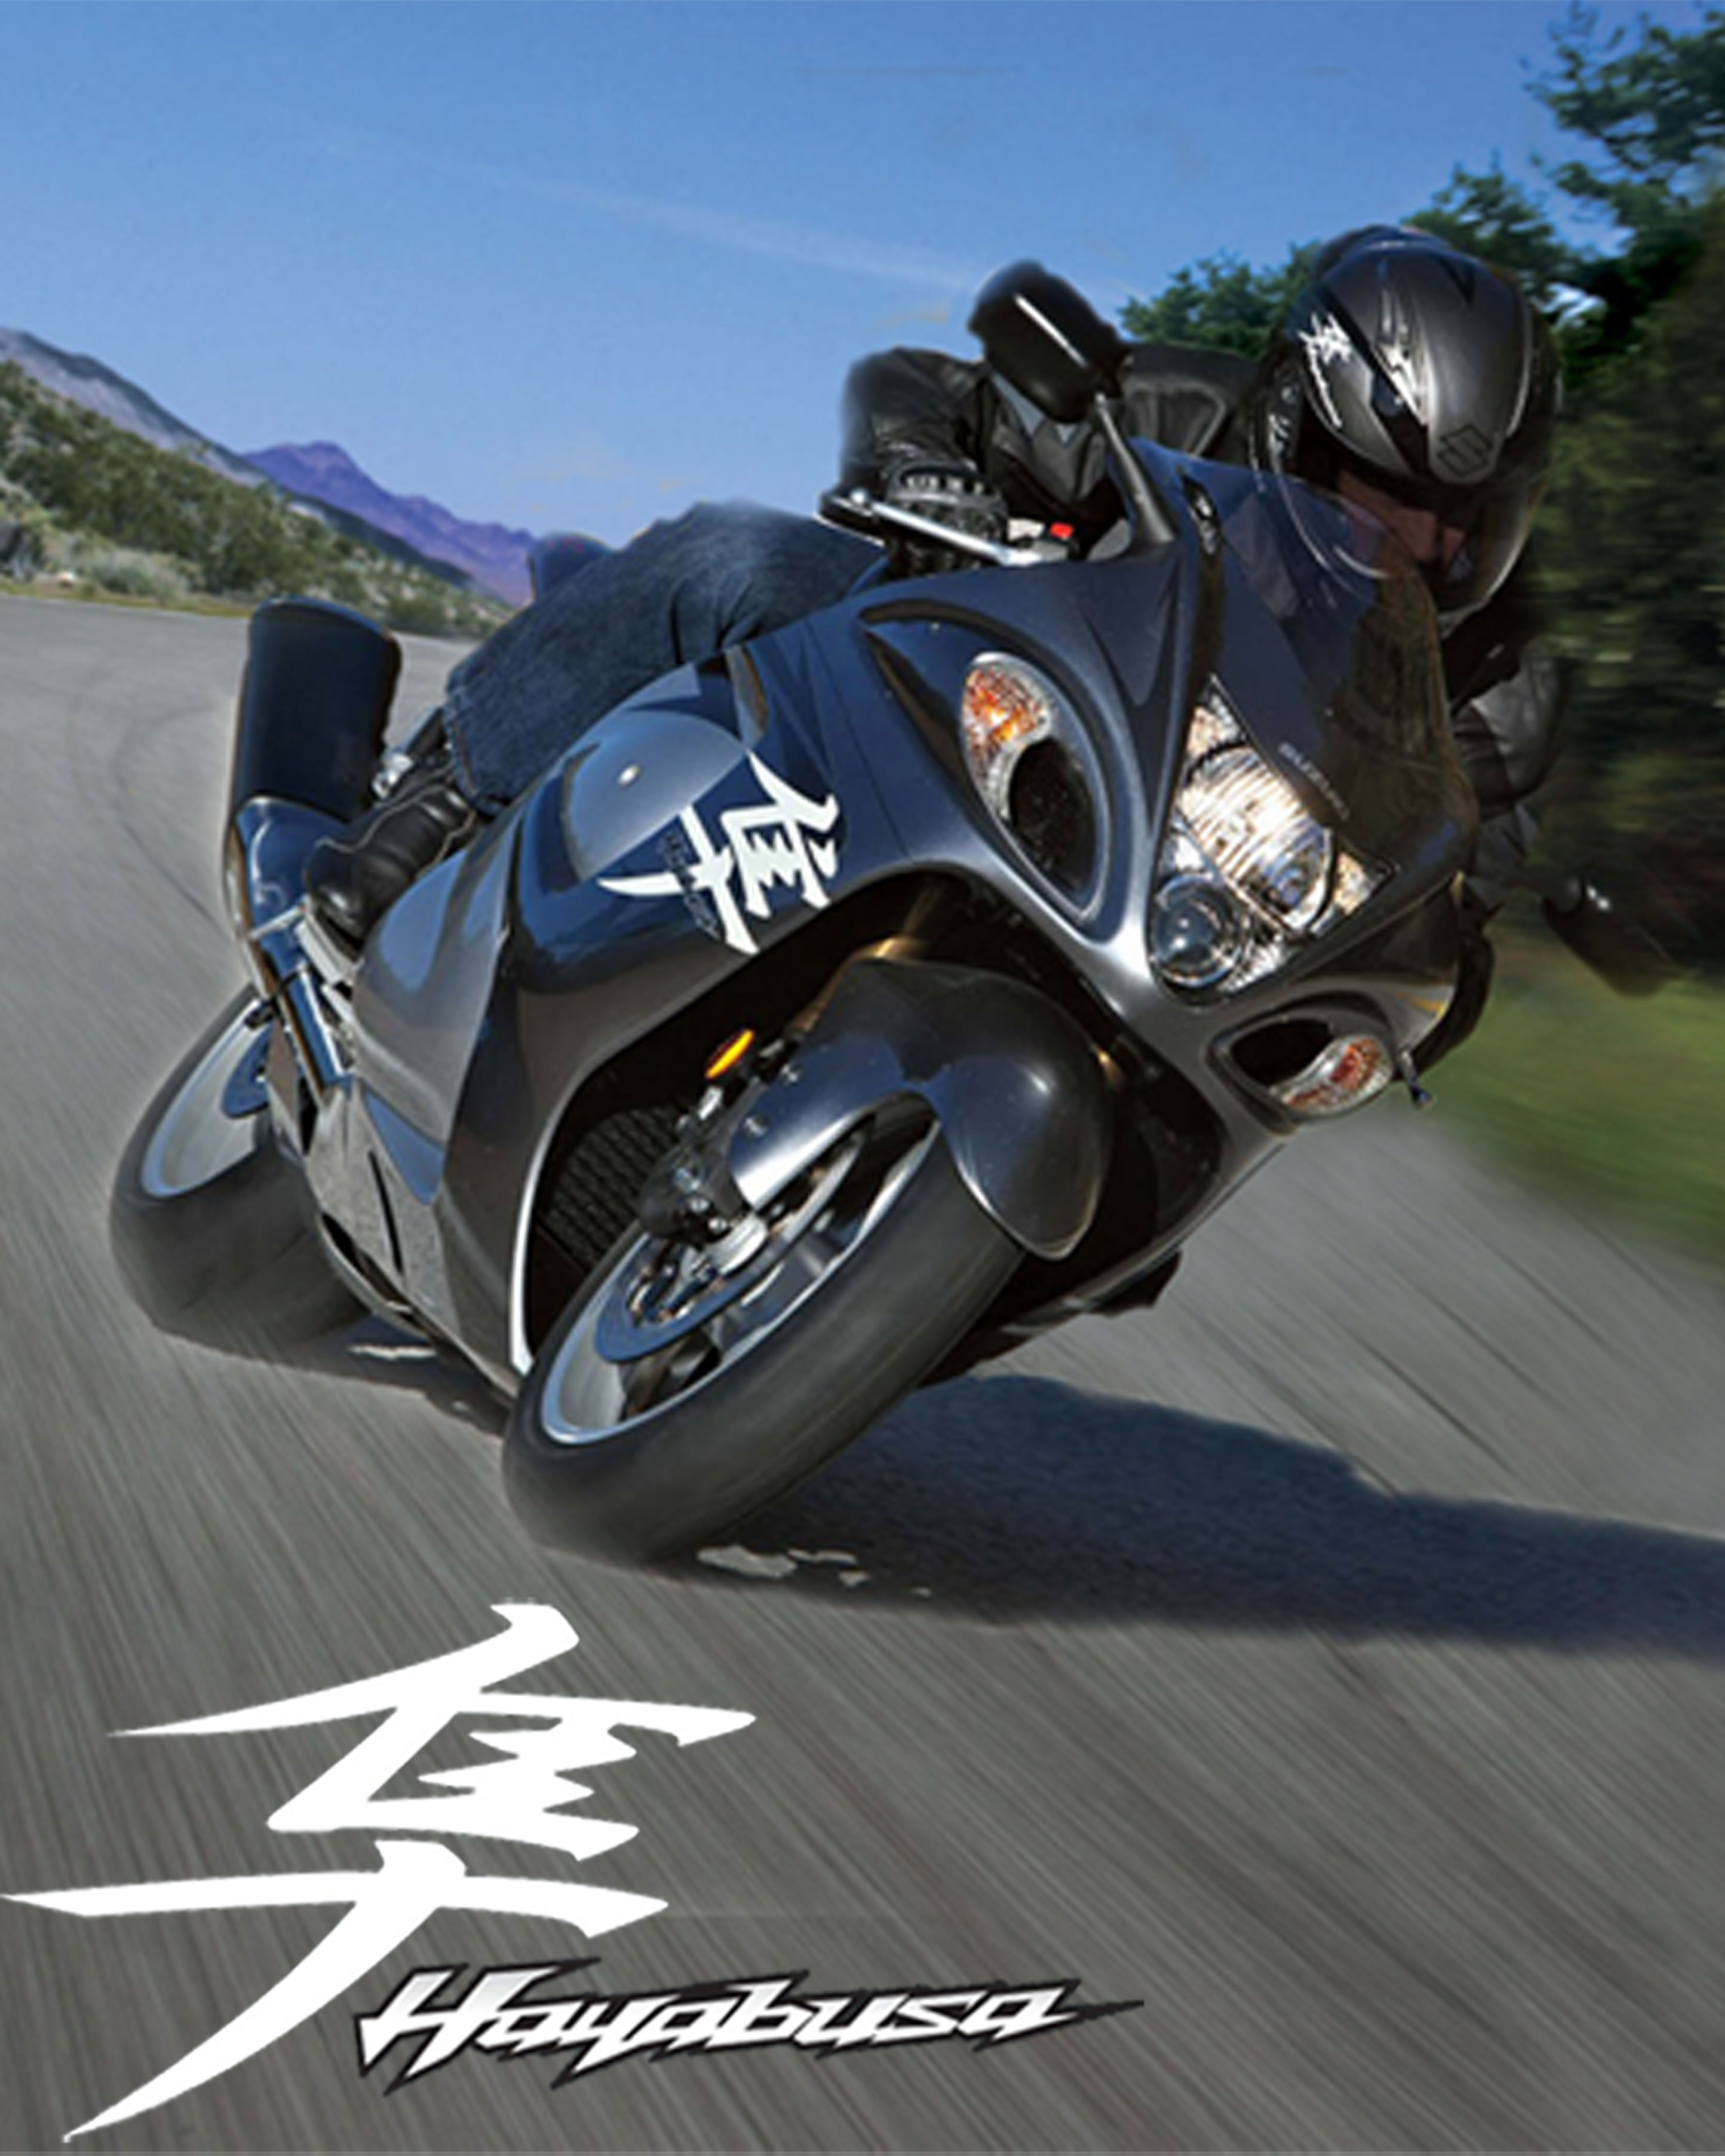 Suzuki Hayabusa Poster Created For Personal Use 16 By 11 Inches Dimensions Glossy Finish バイク